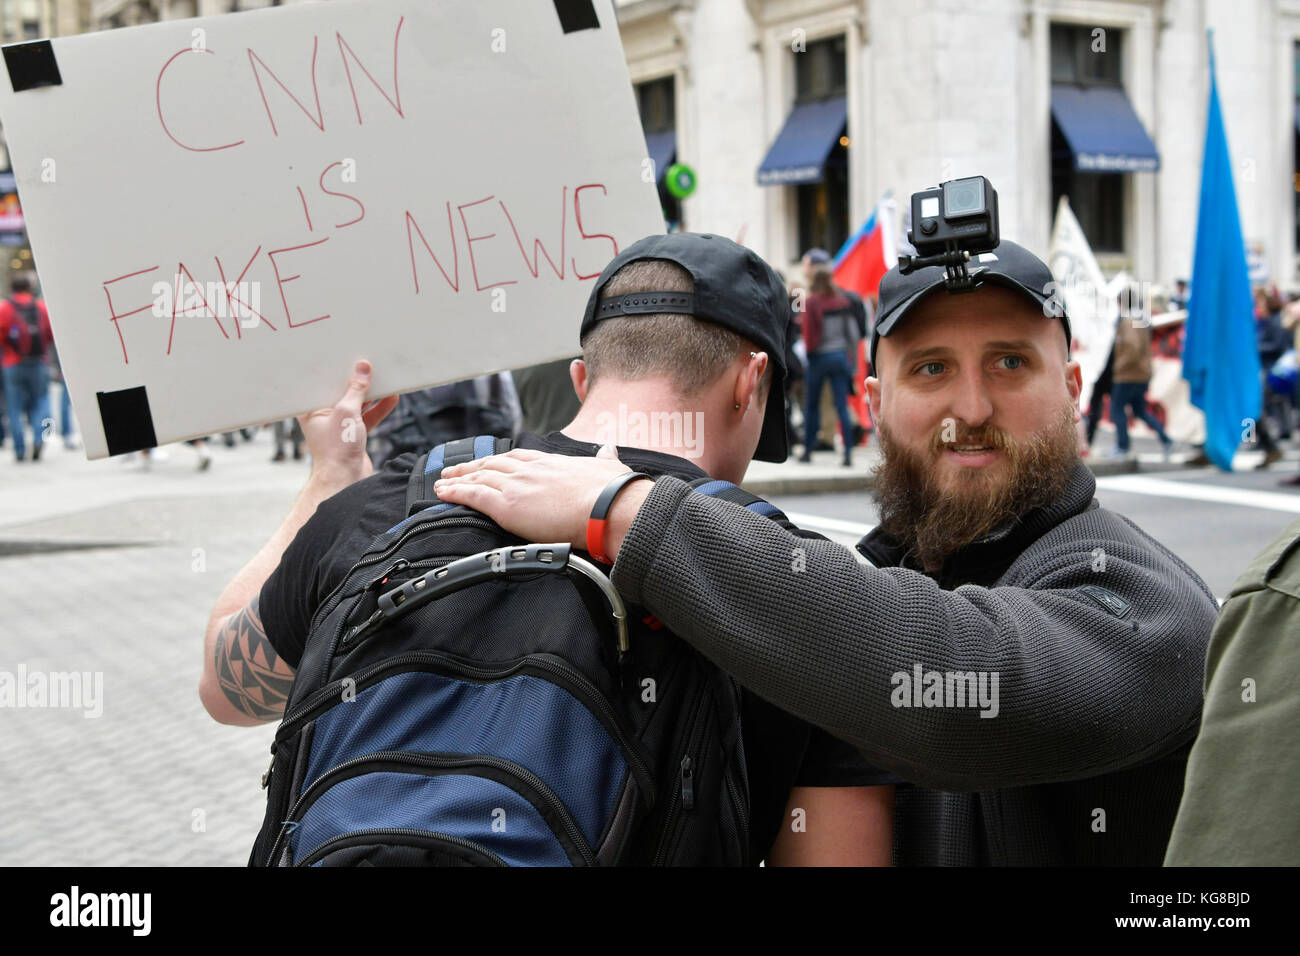 Philadelphia, United States. 04th Nov, 2017. In an attempt to provoke an altercation Trump supporters follow in - Stock Image